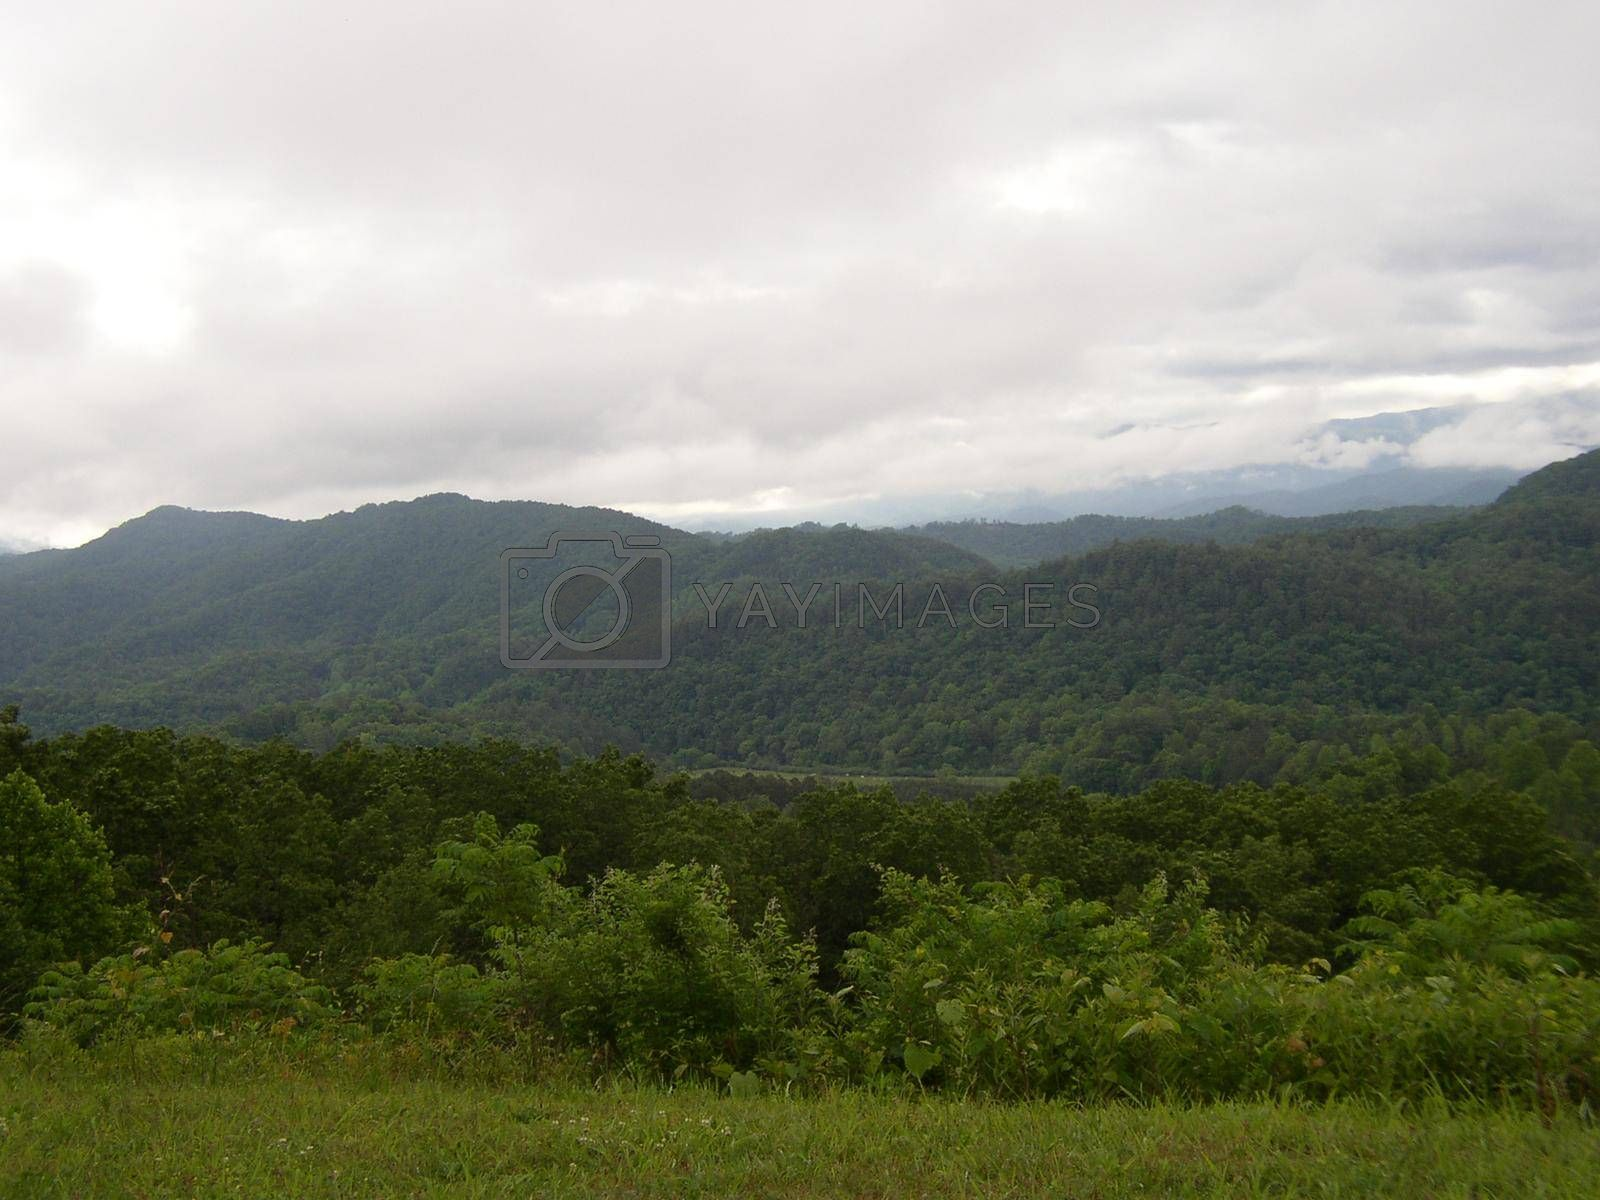 The Smoky Mountains seen from the Foothills Parkway